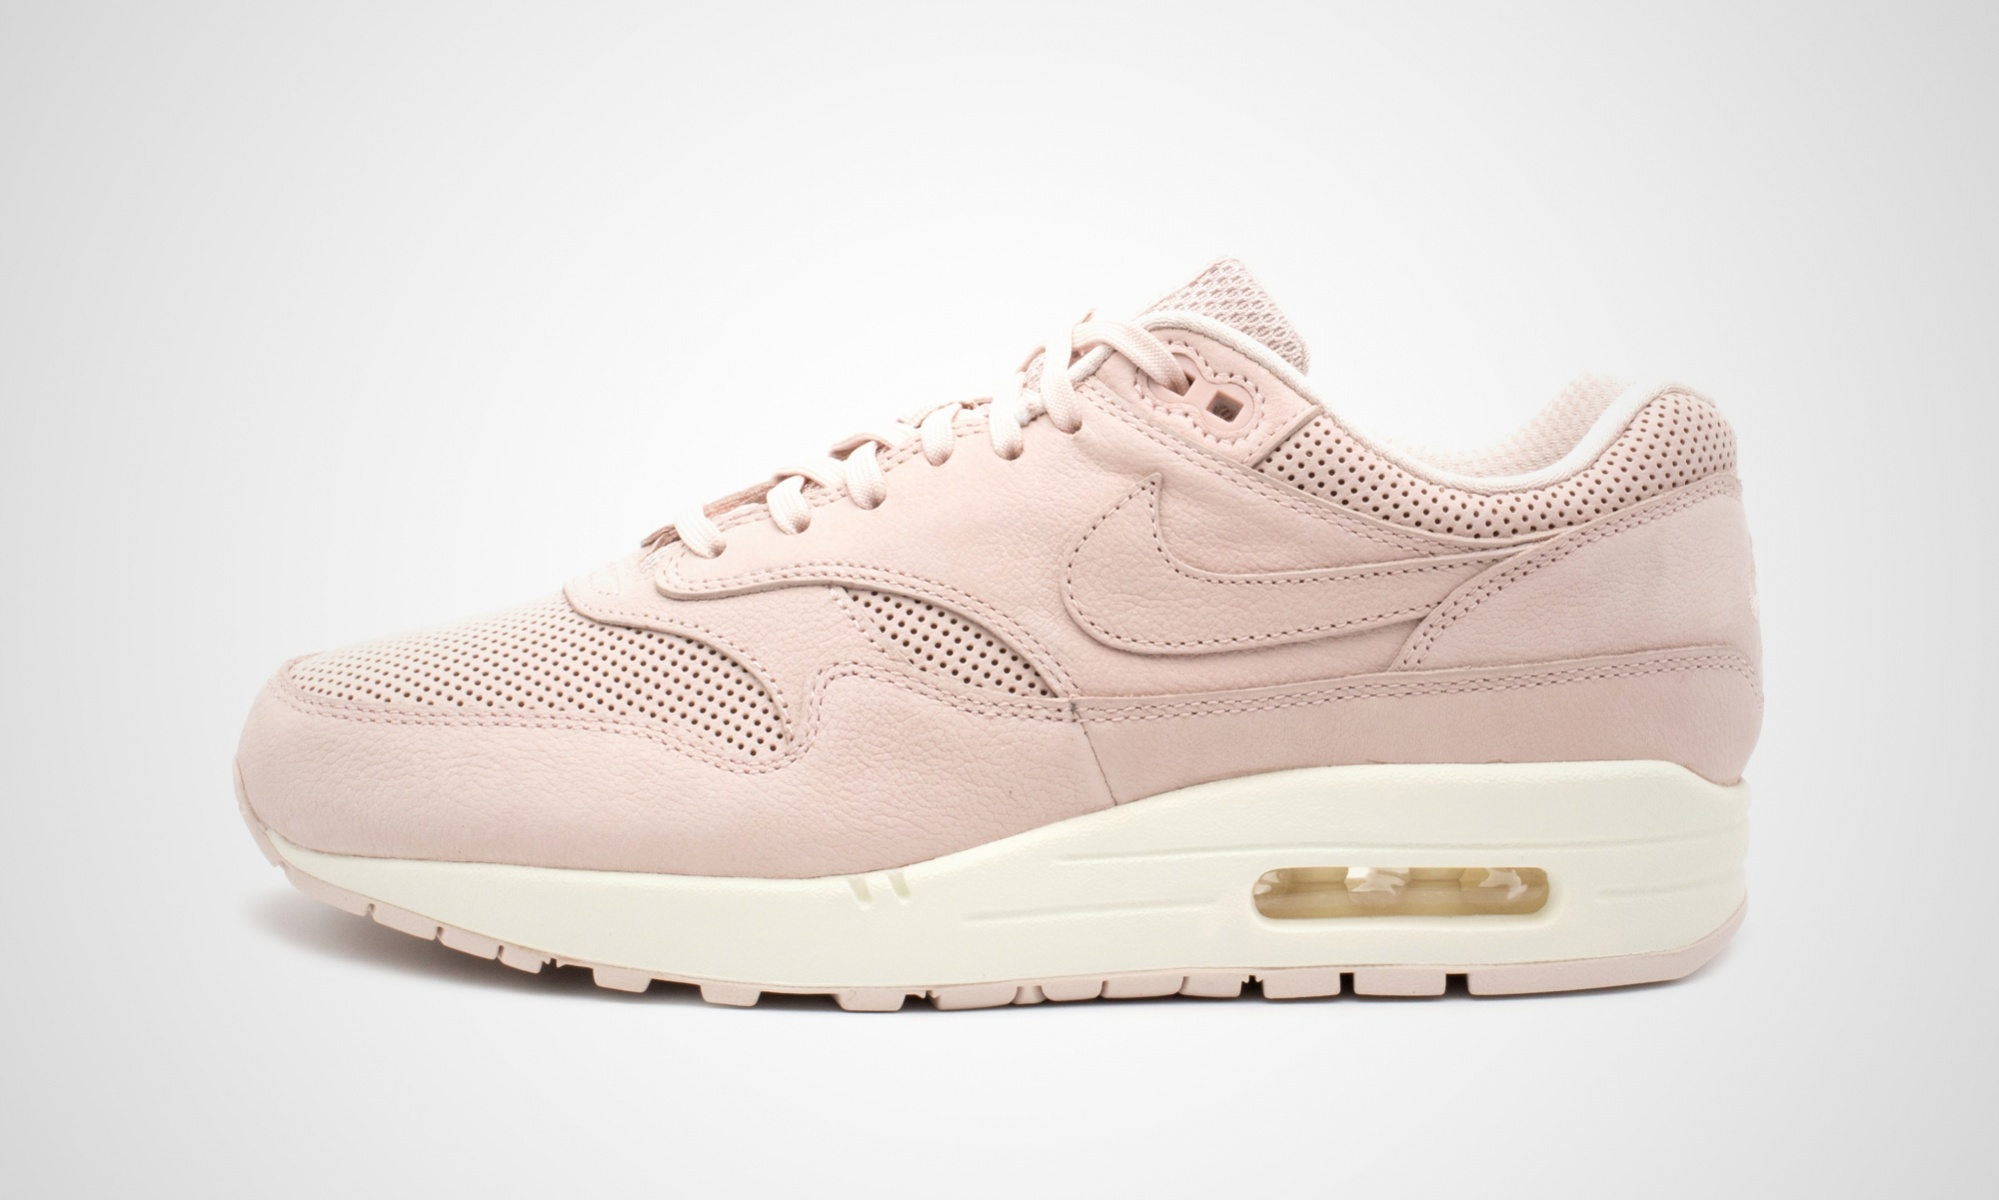 nike air max 1 wmns pinnacle pink. Black Bedroom Furniture Sets. Home Design Ideas